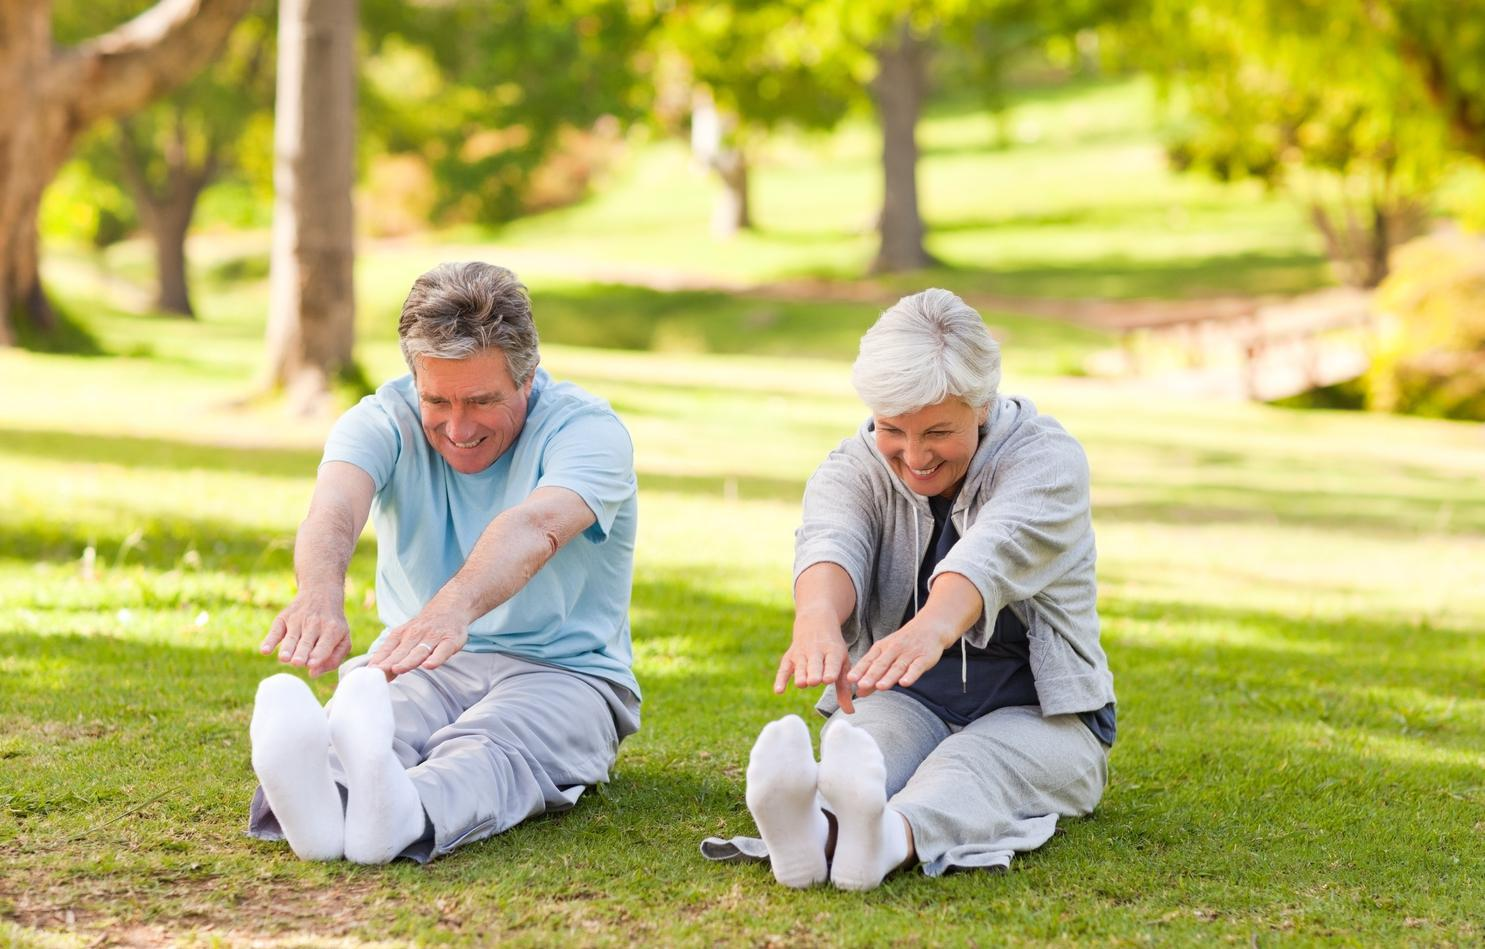 An older couple sitting on the grass in the park doing stretches.